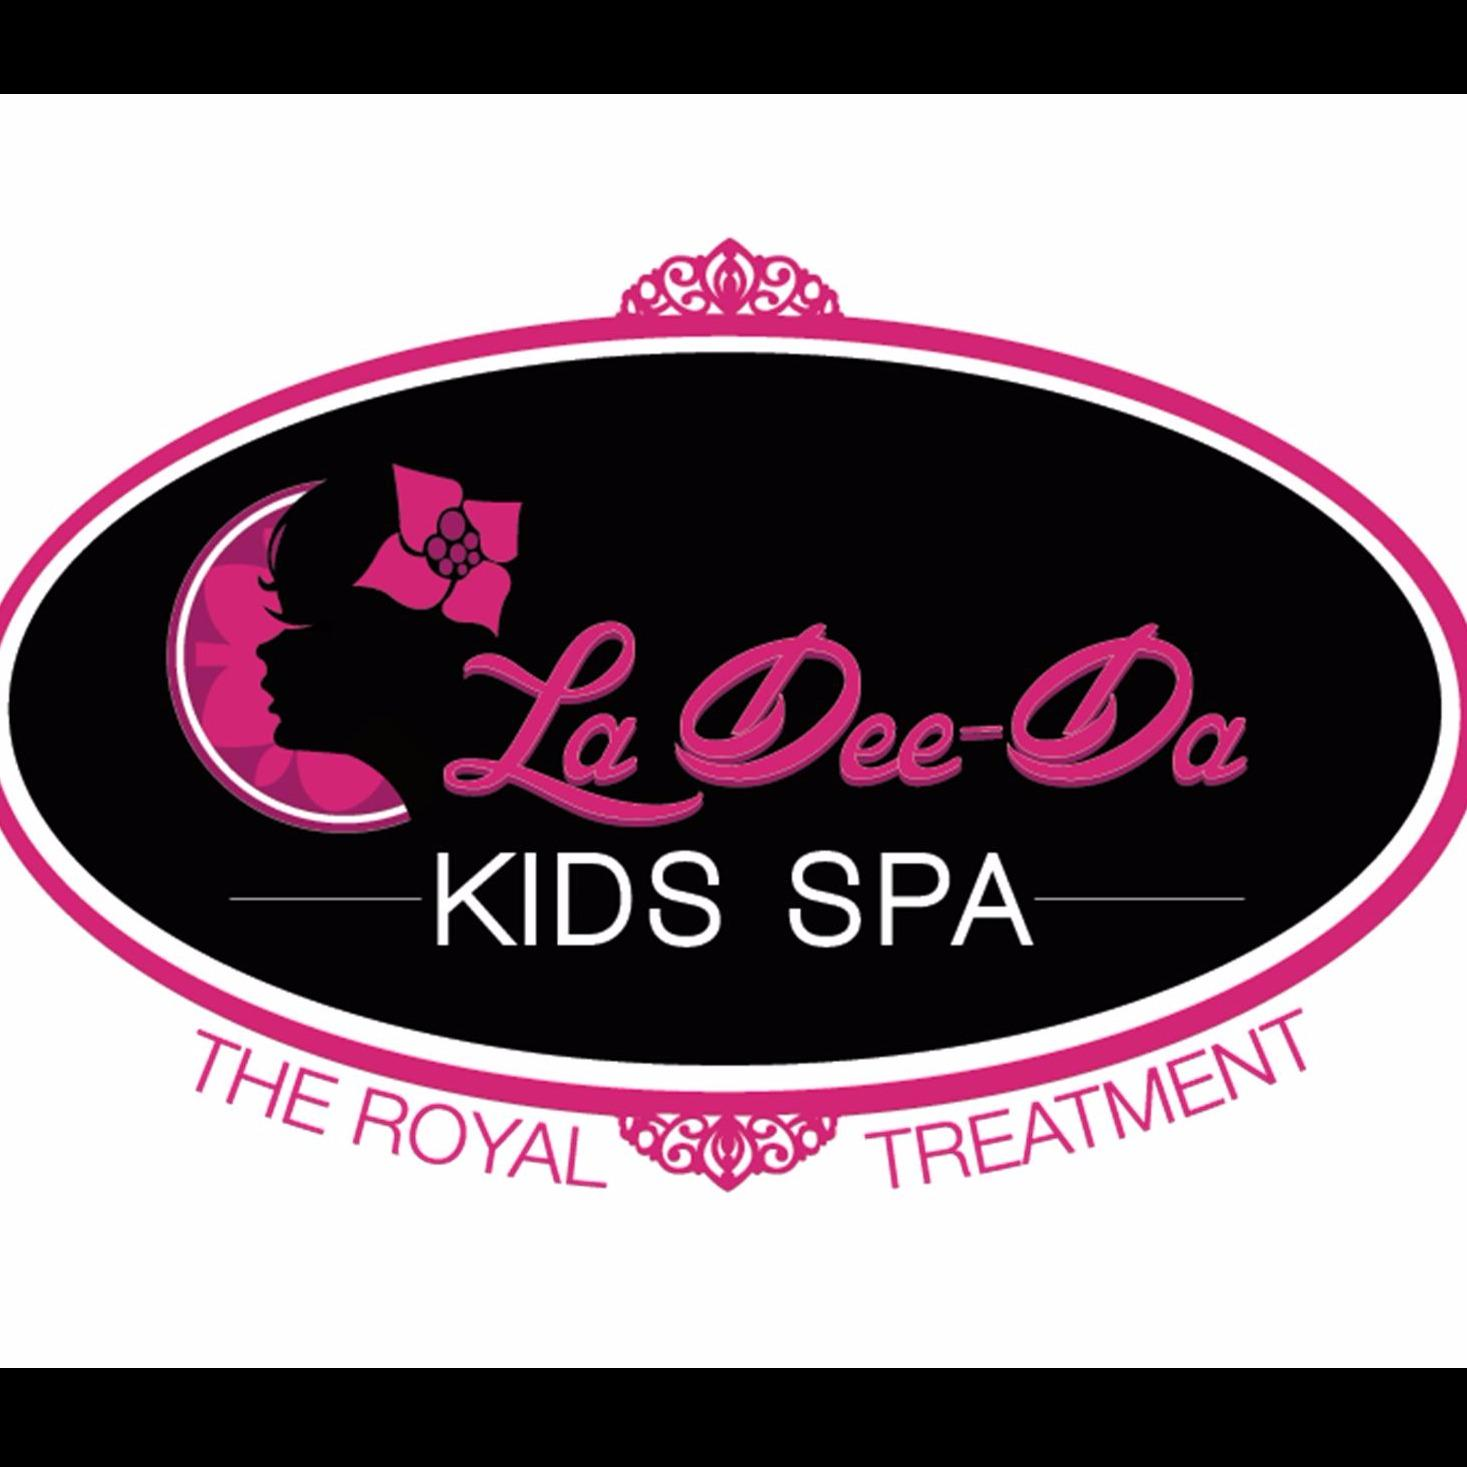 Ladee da kids spa clearwater florida fl for Abc salon equipment in clearwater fl